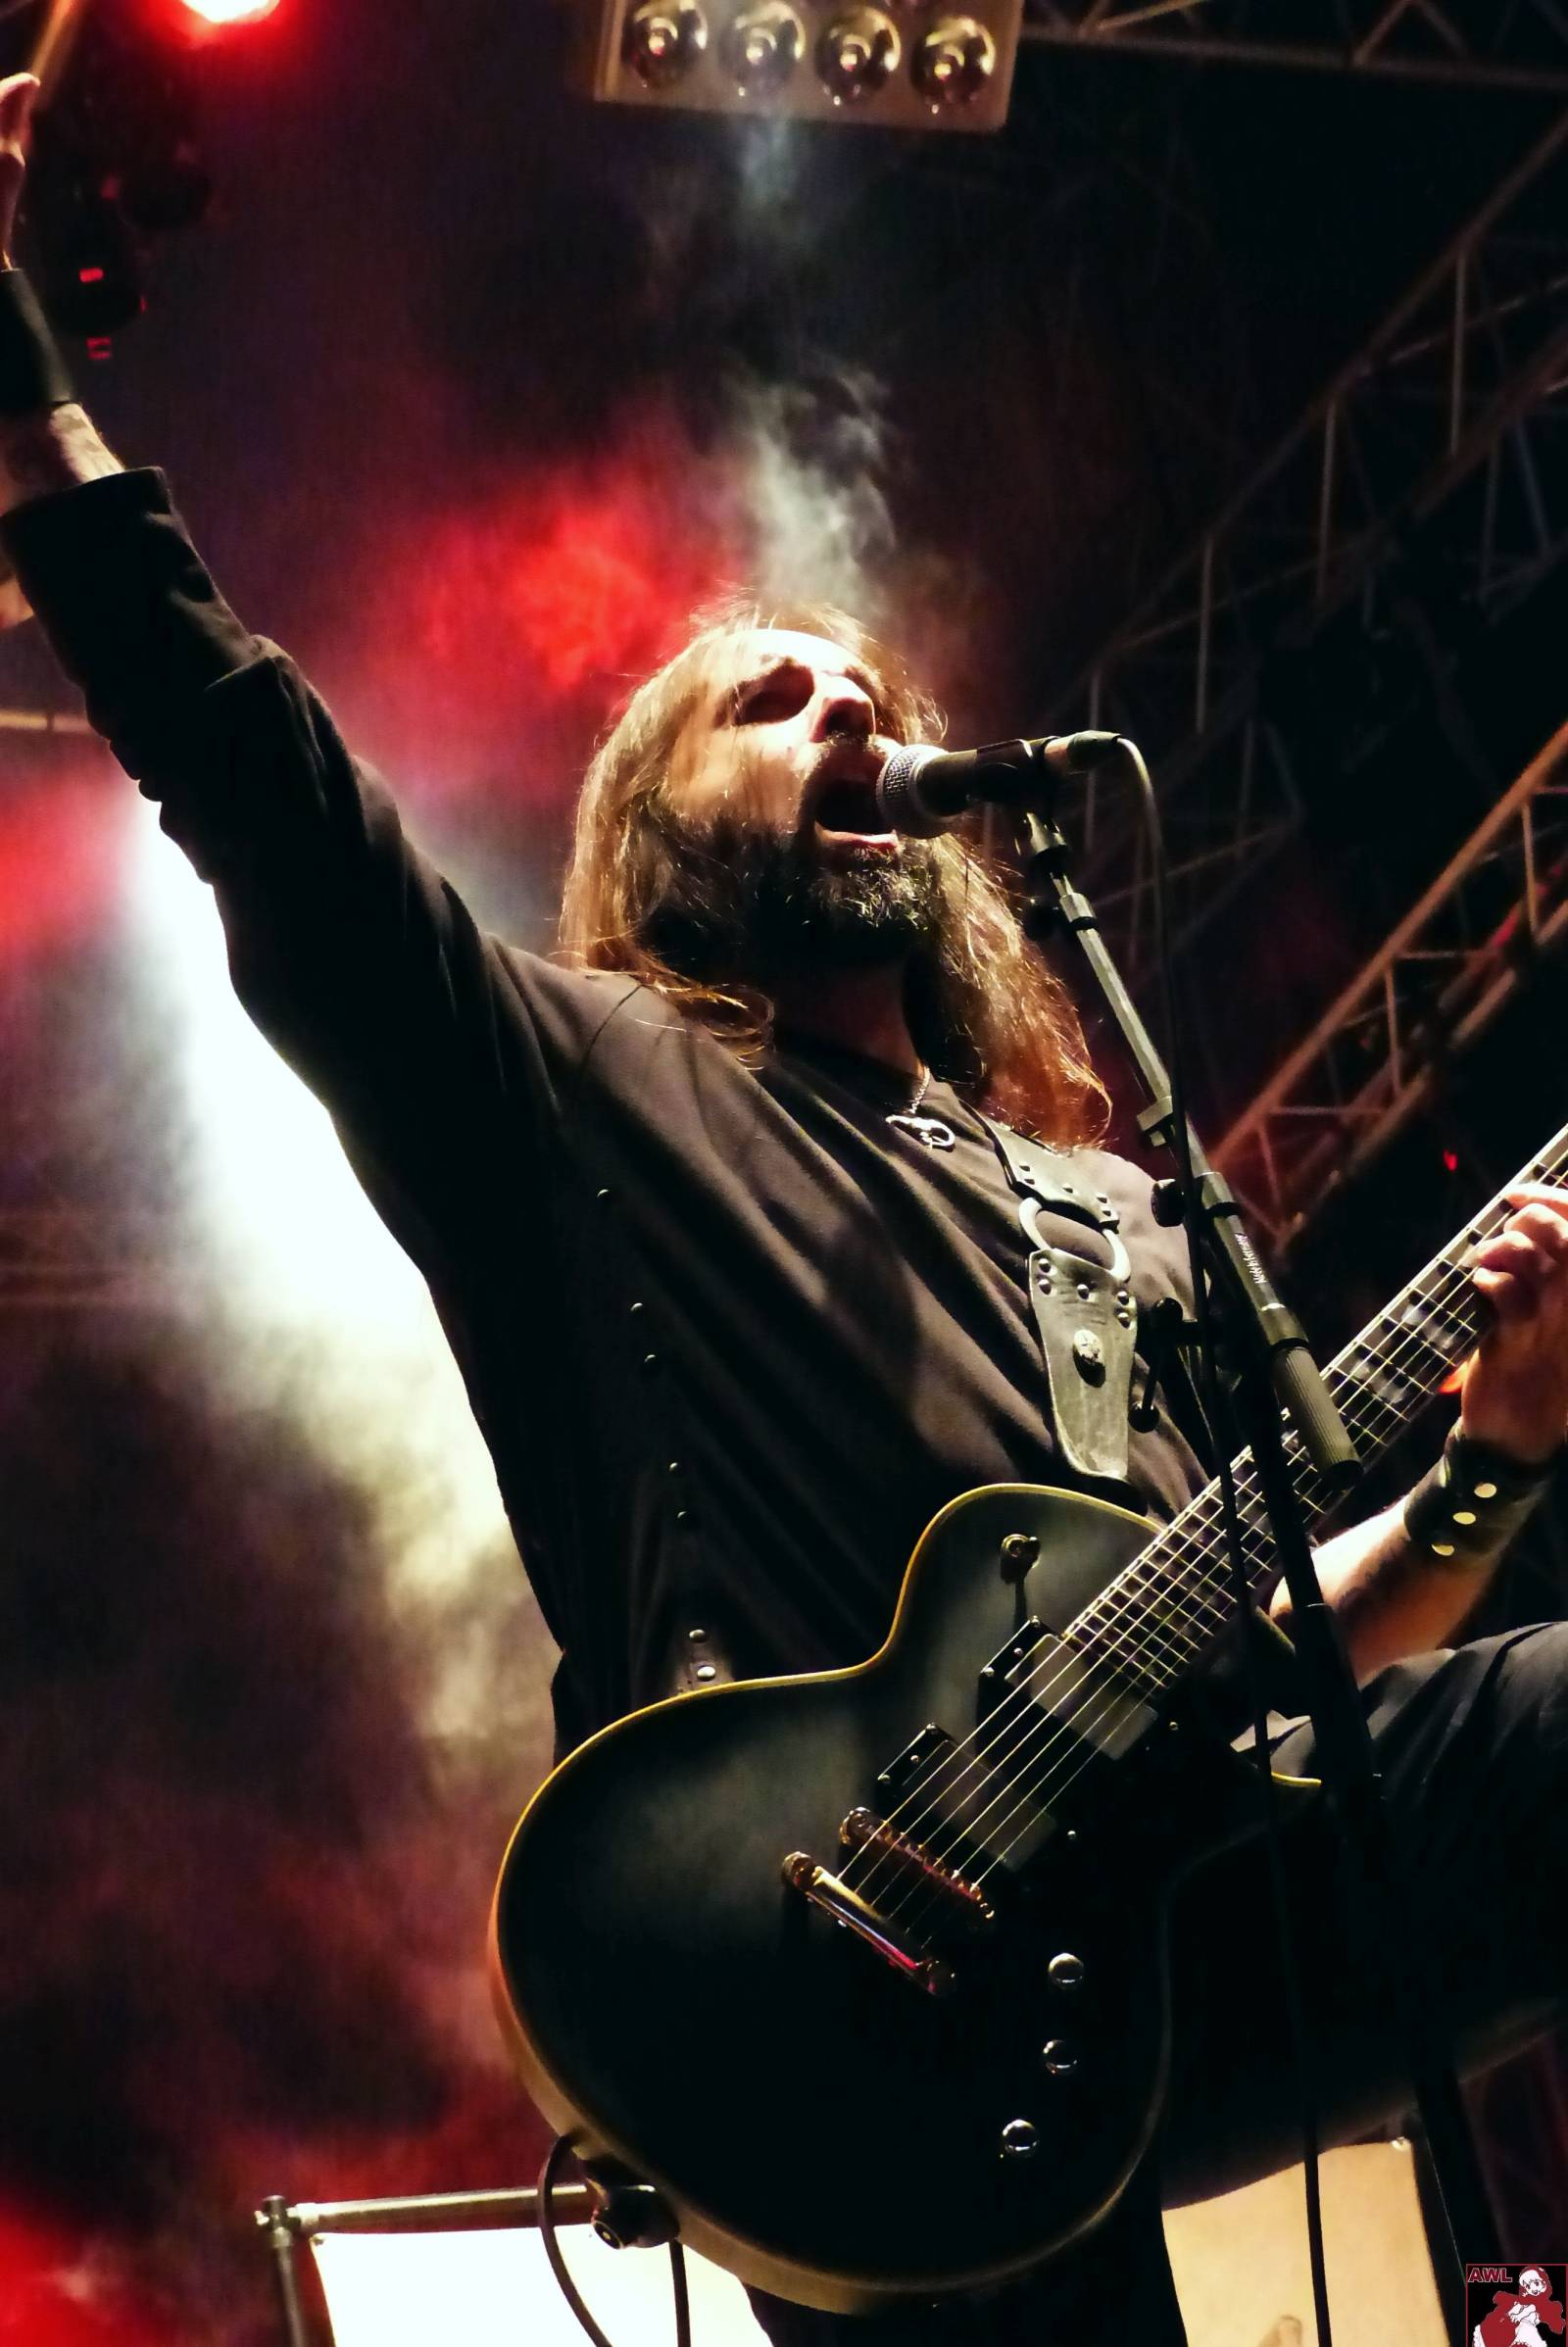 rotting christ discography line up biography interviews photos